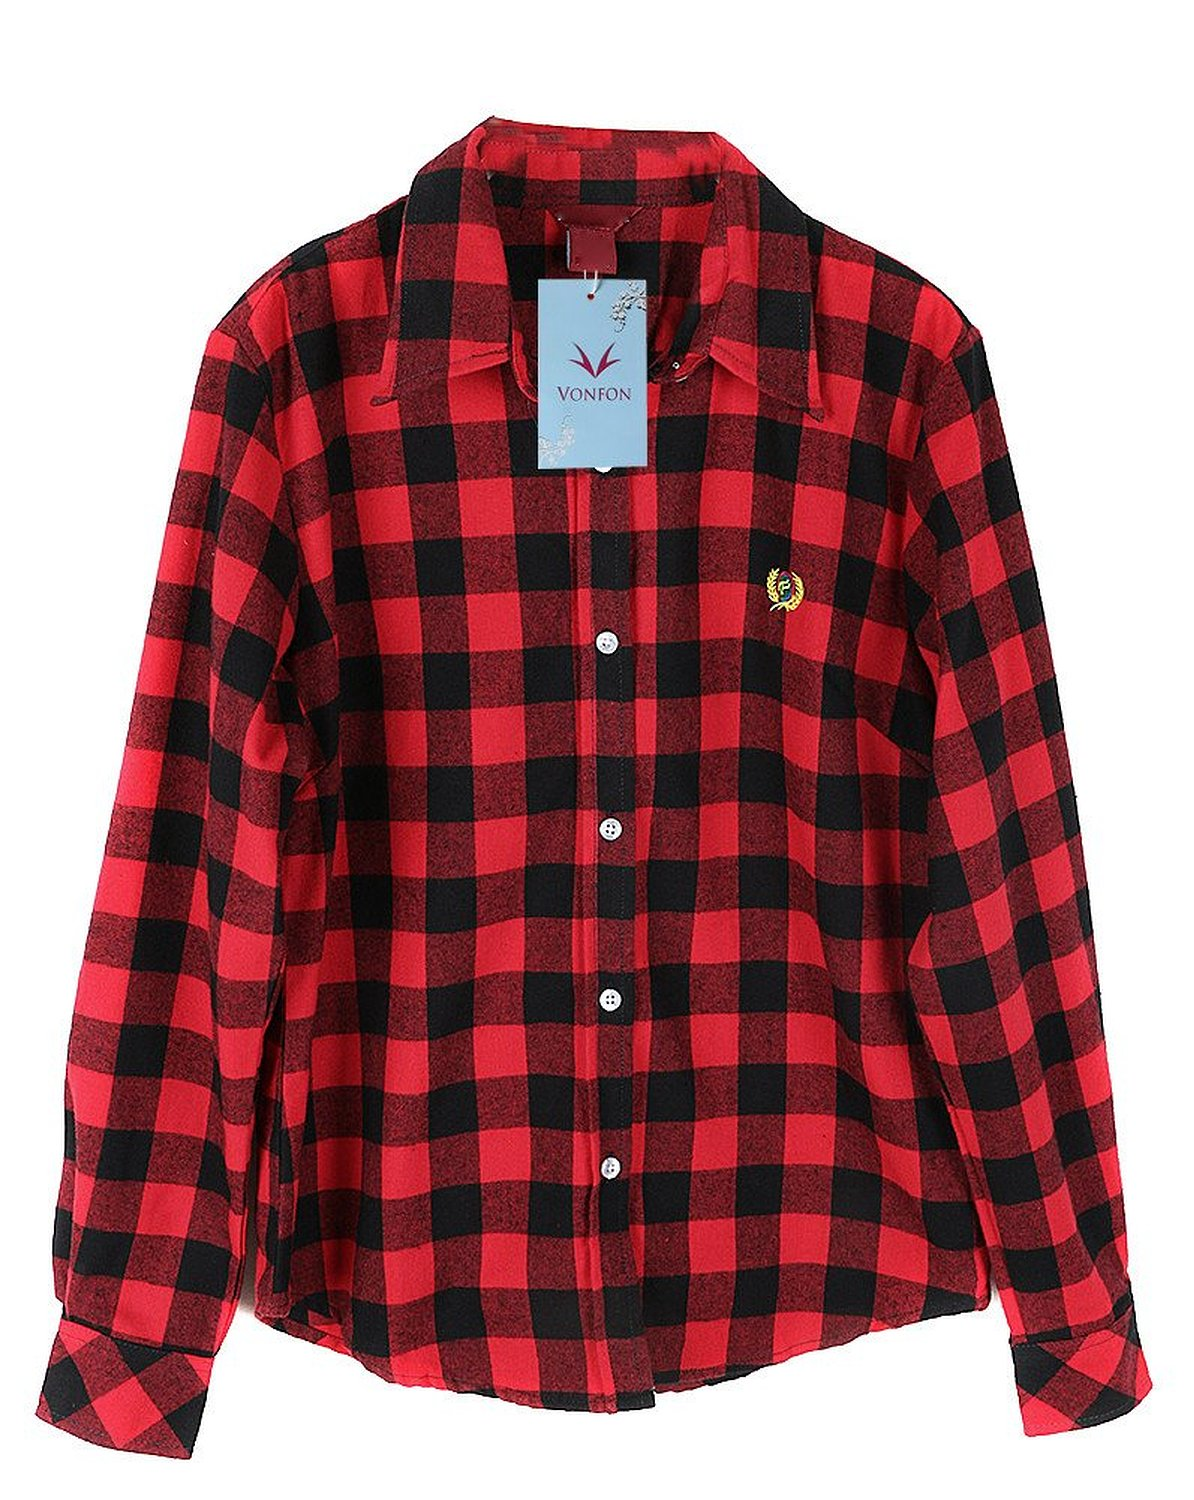 Black And Red Plaid Shirt Women